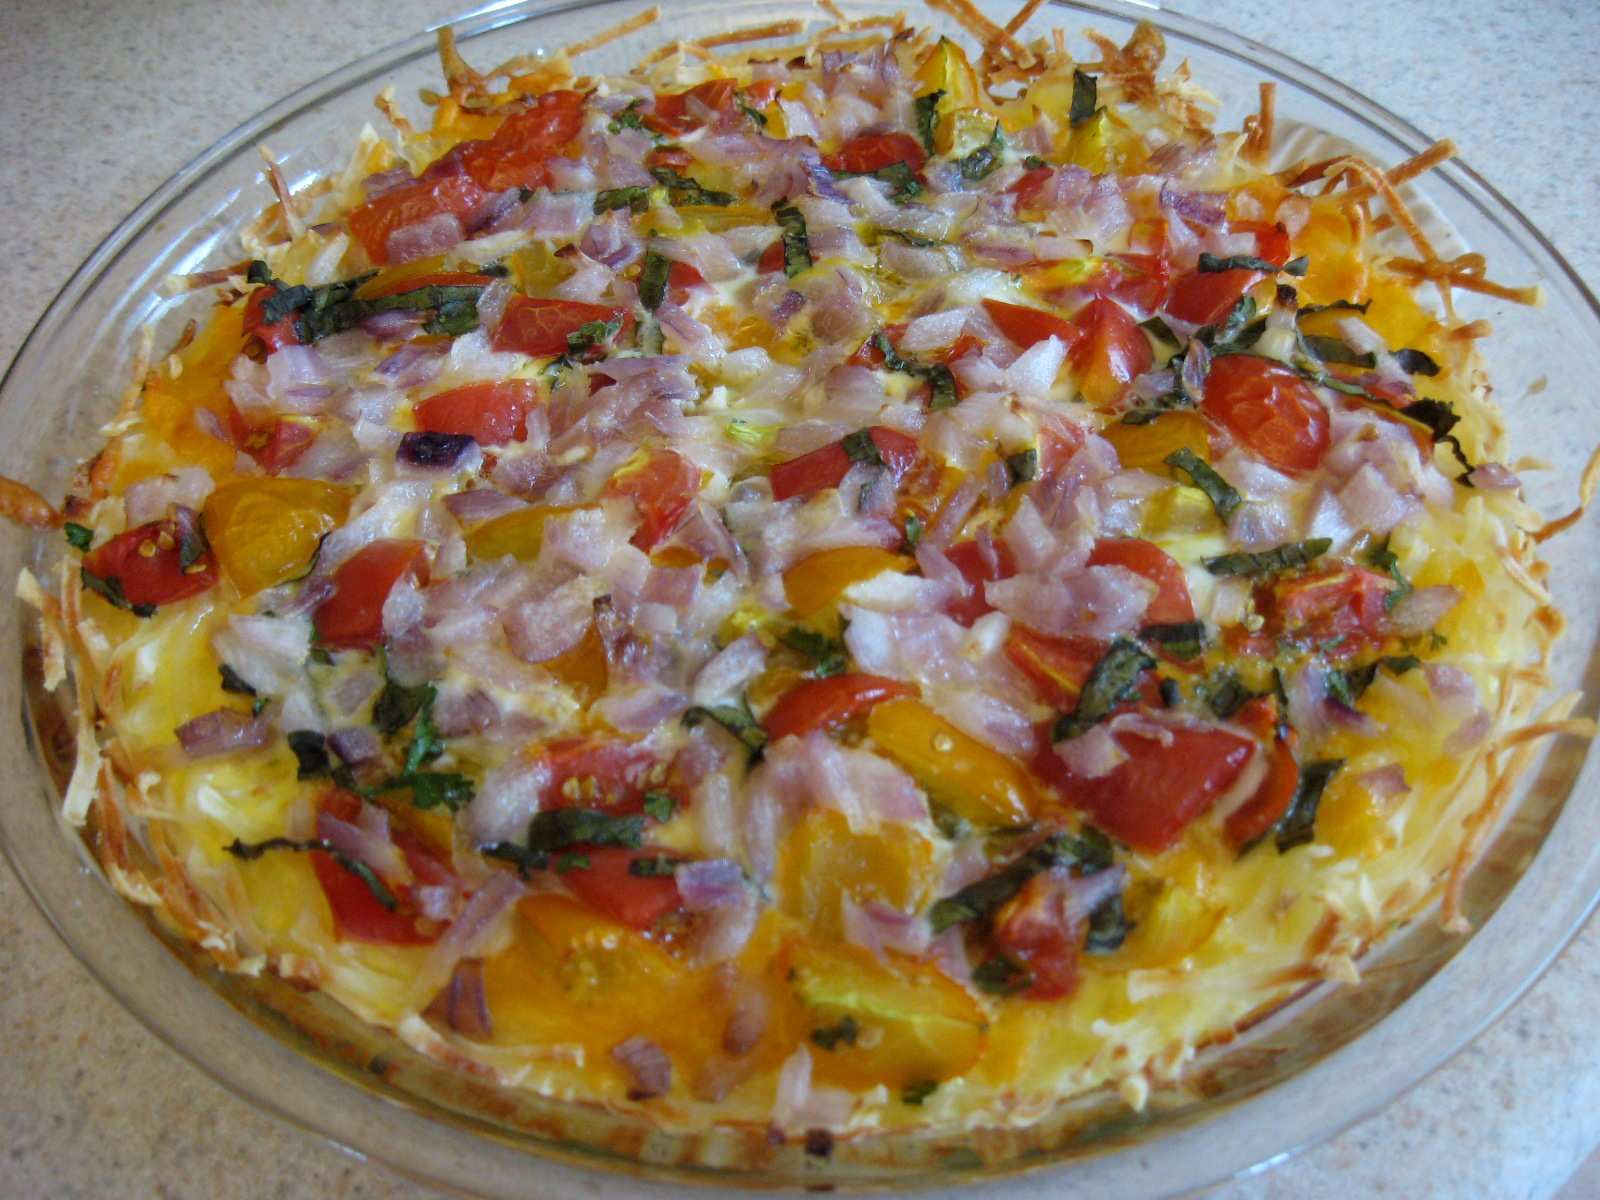 Now Things are Cookin': Tomato Basil Quiche with Potato Crust